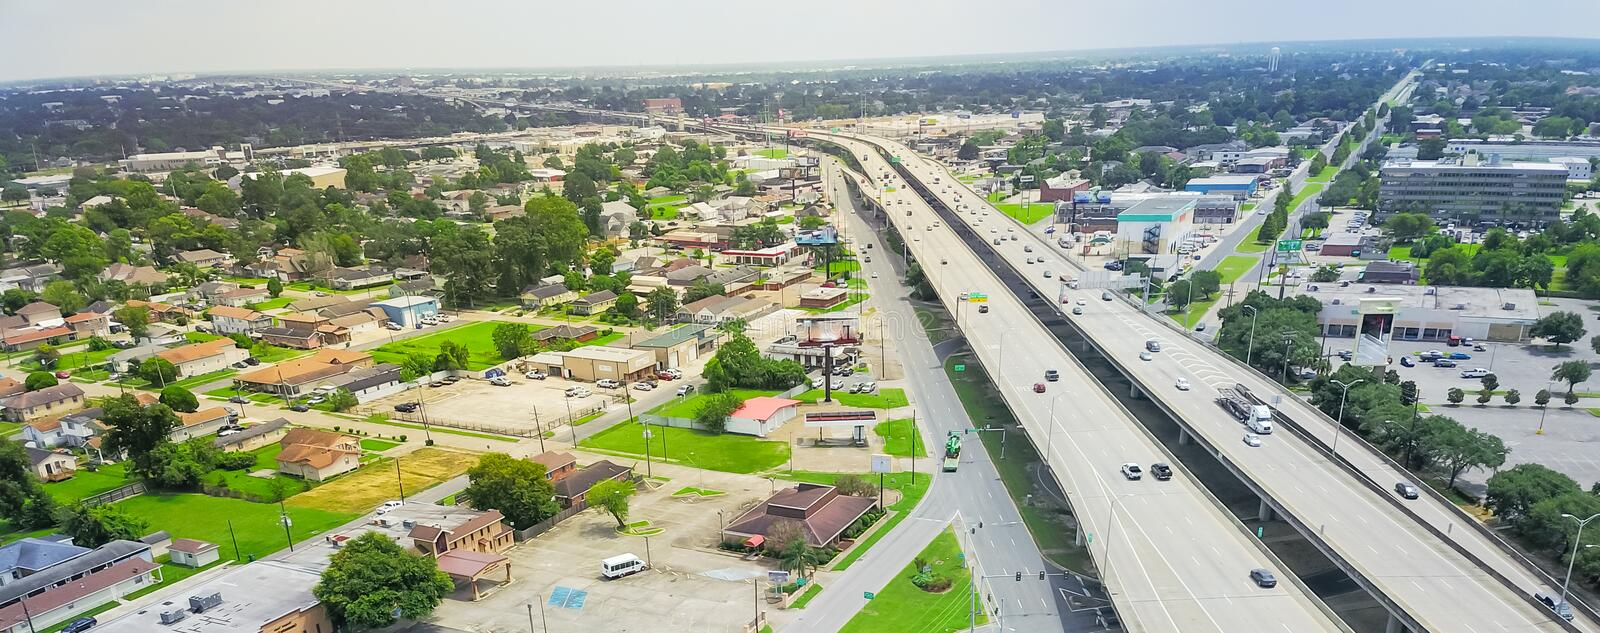 Panoramic top view elevated highway 90 and Westbank expressway i royalty free stock image